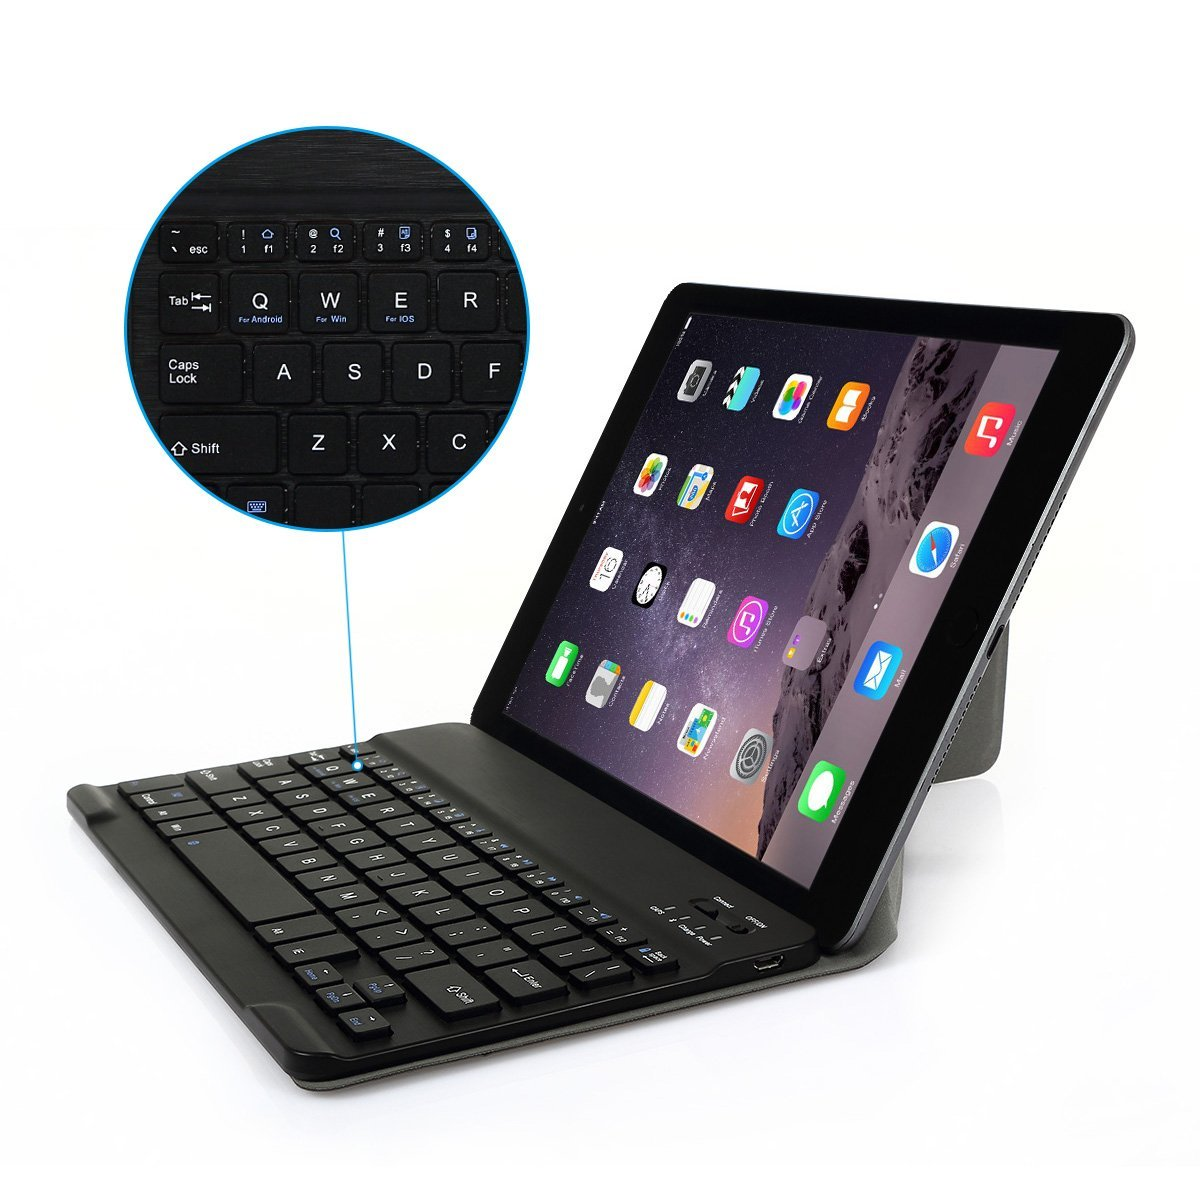 "CoastaCloud Bluetooh Keyboard for Samsung Galaxy Tab S 10.5"" US Layout Detachable ABS Bluetooth Wireless Universal Magnetic Case Cover Black"